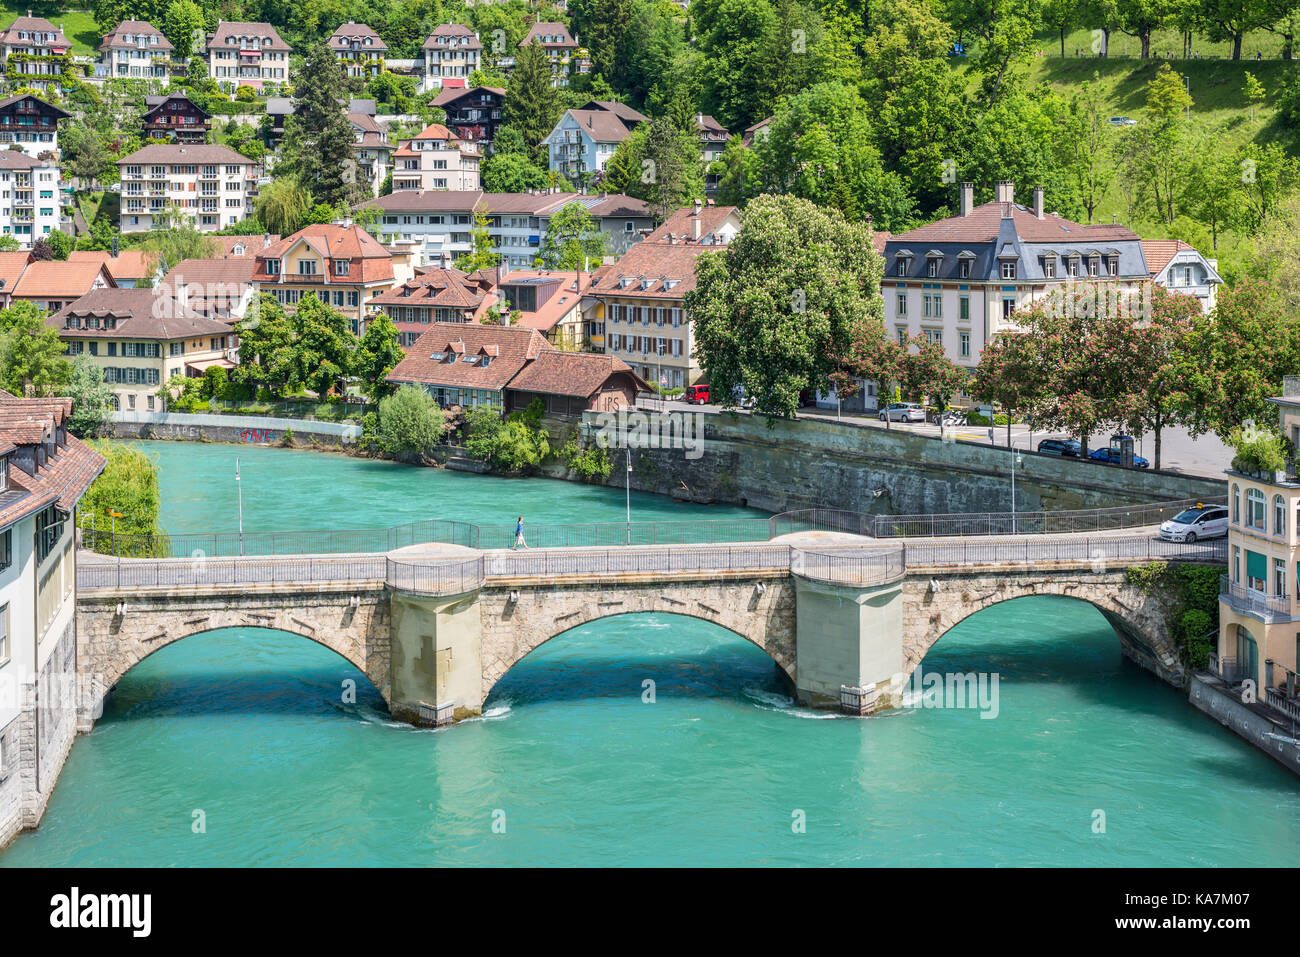 Bern, Switzerland - May 26, 2016: Architecture of the old European town, coastal cityscape with river and bridge Stock Photo